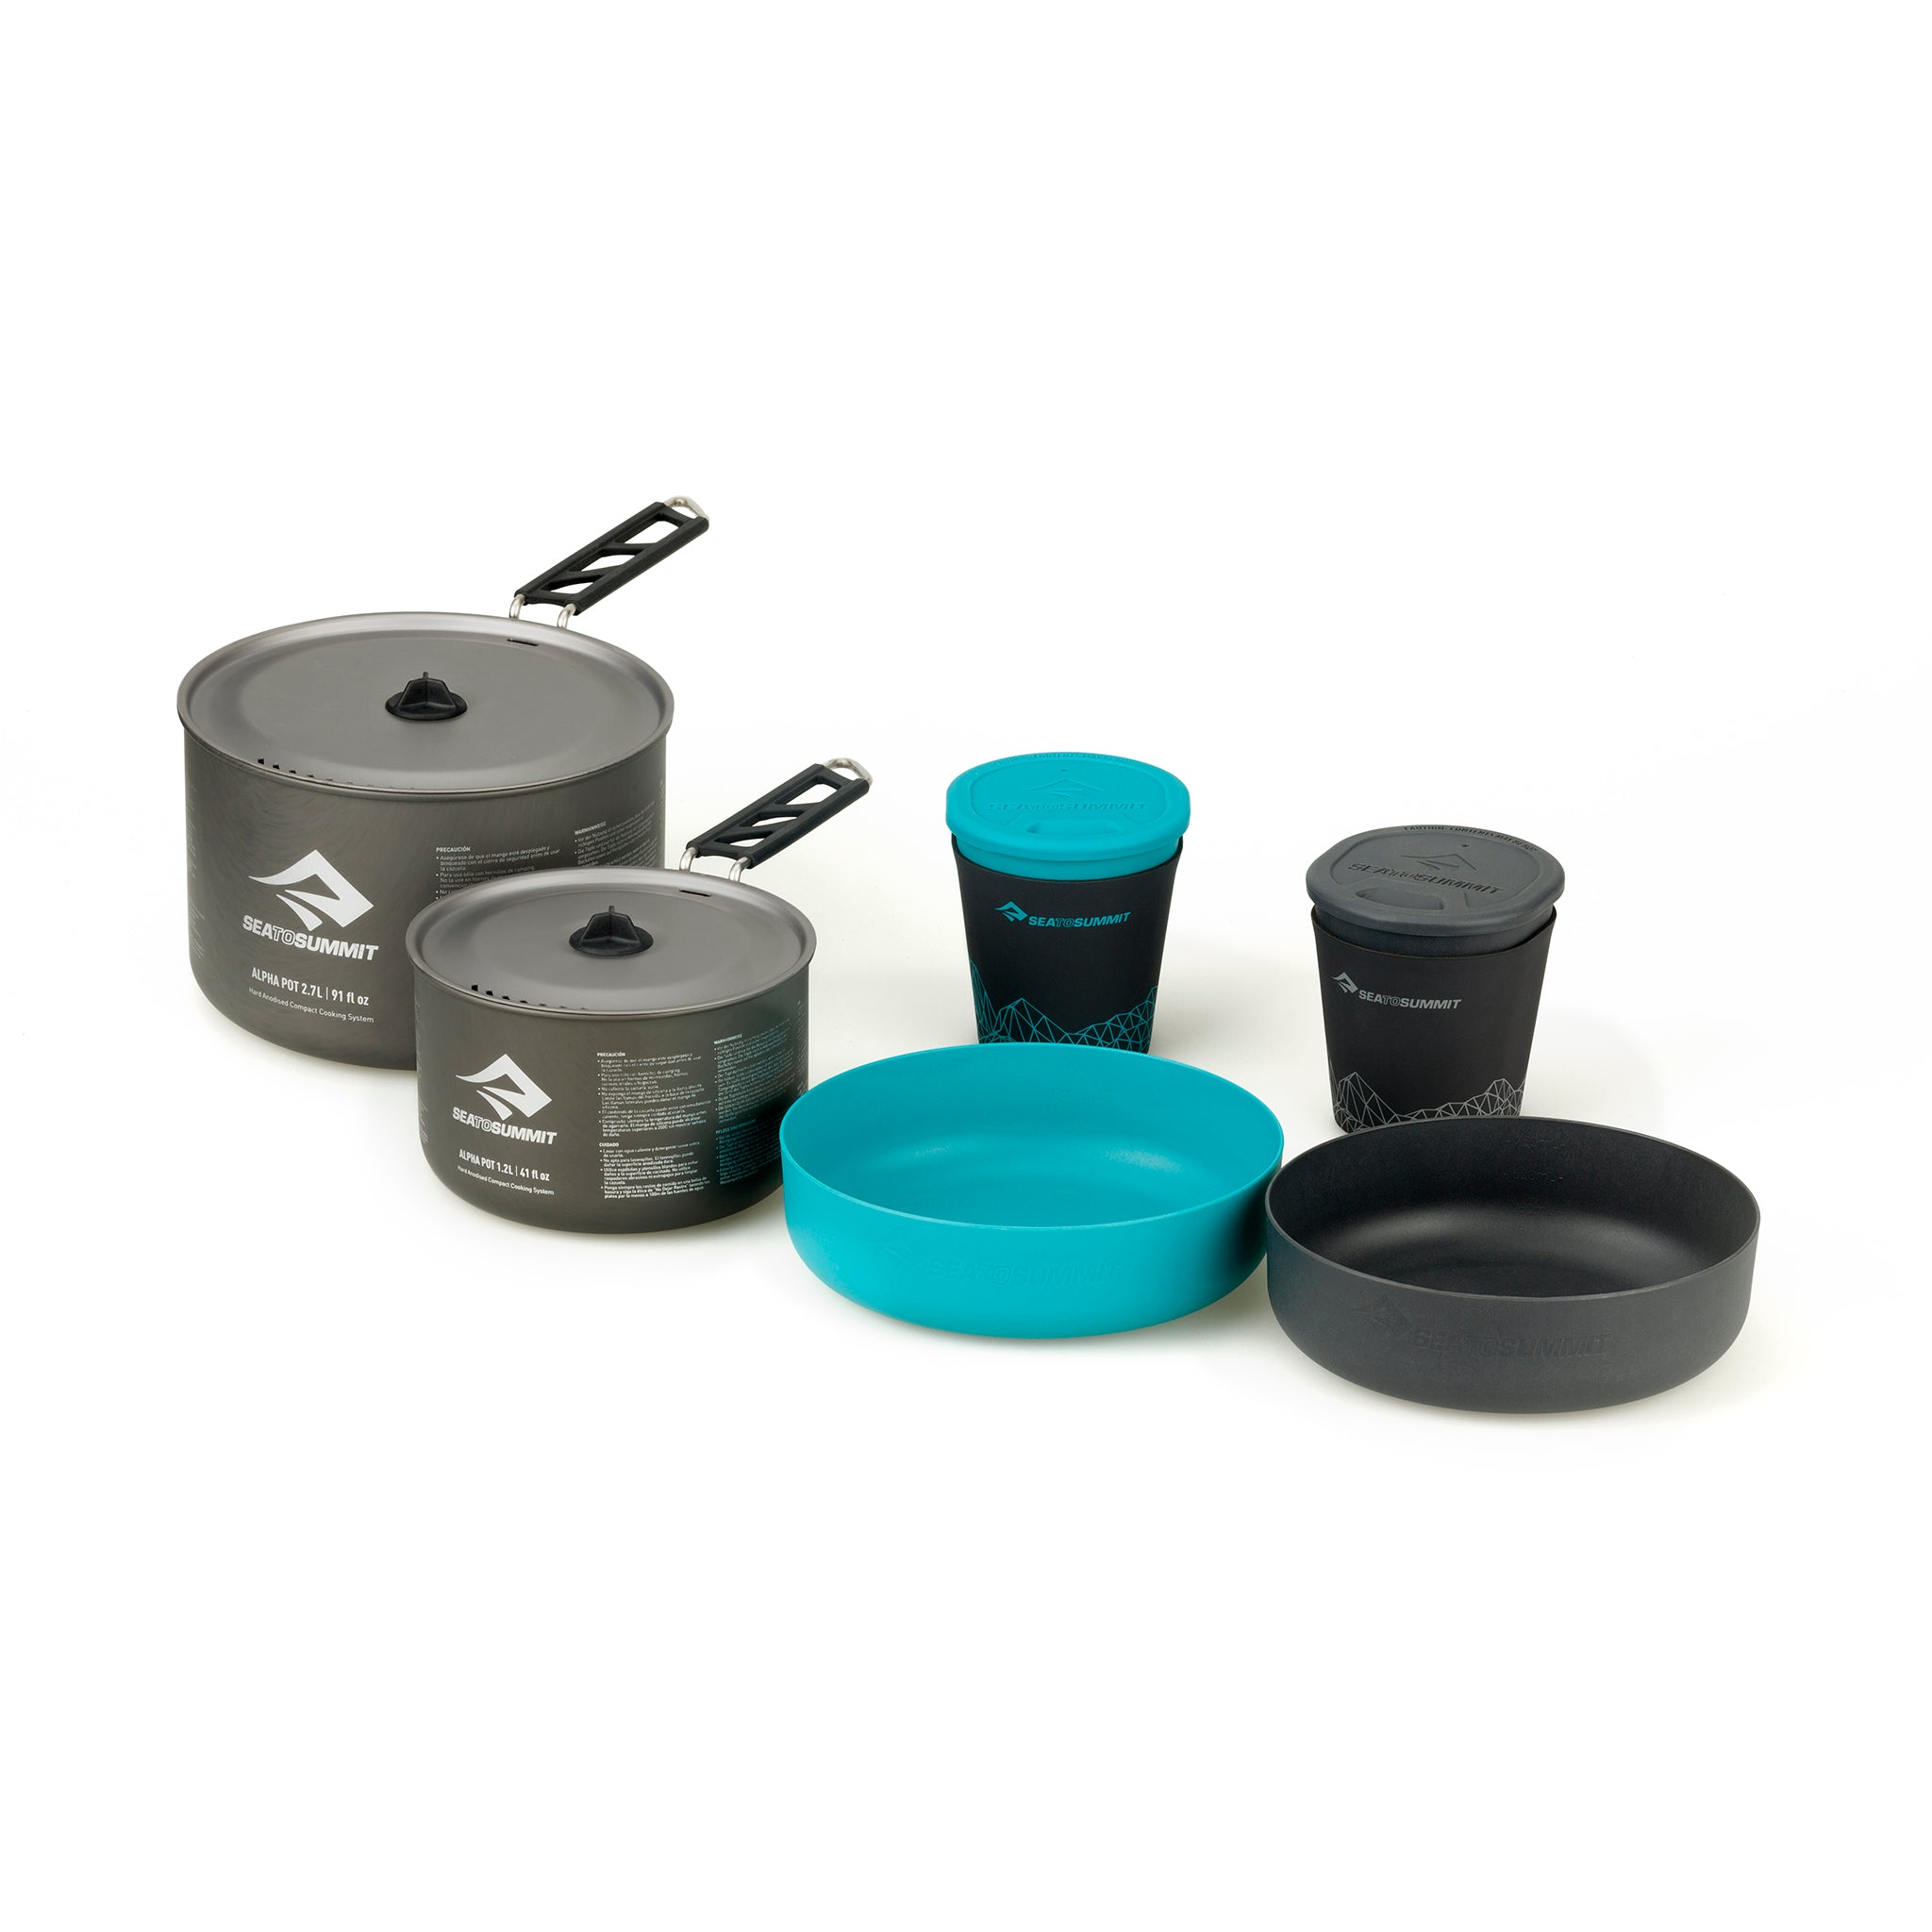 Alpha 2 Pot Cook Set 2.2 _ backpacking cook set _ pot bowl and mug _ two people